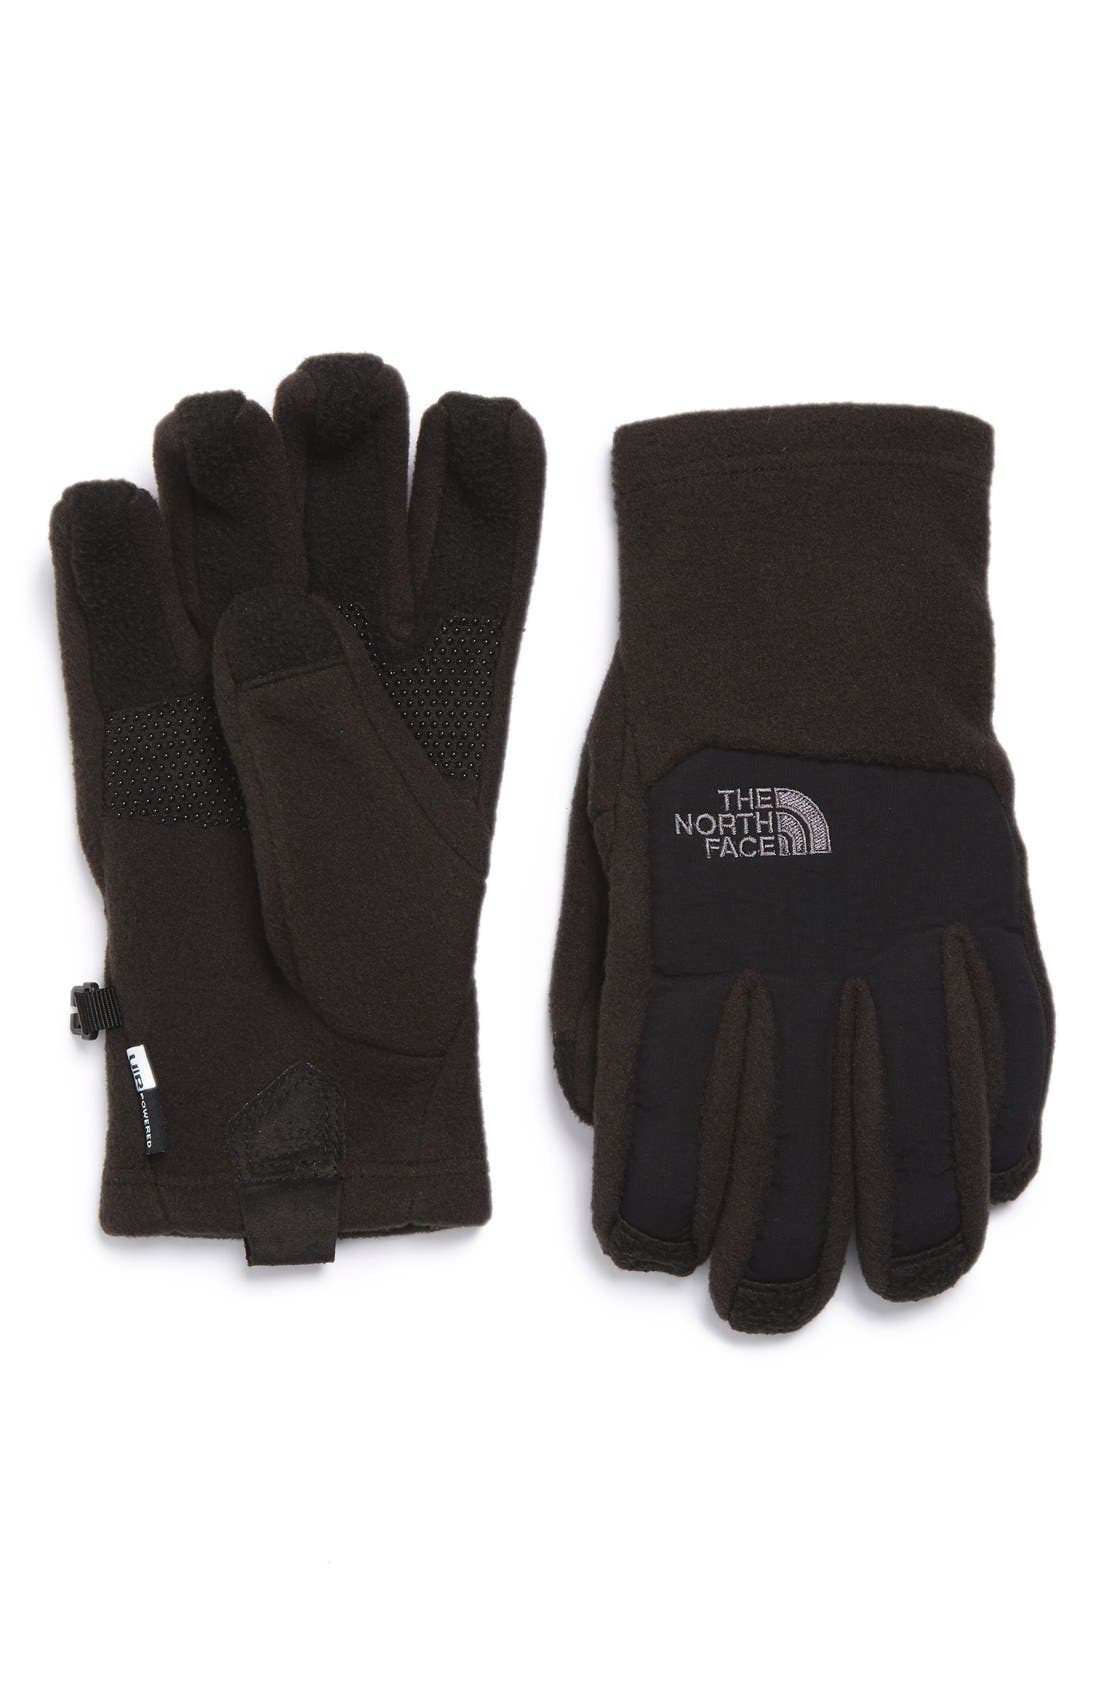 THE NORTH FACE Denali E-Tip Fleece Tech Gloves